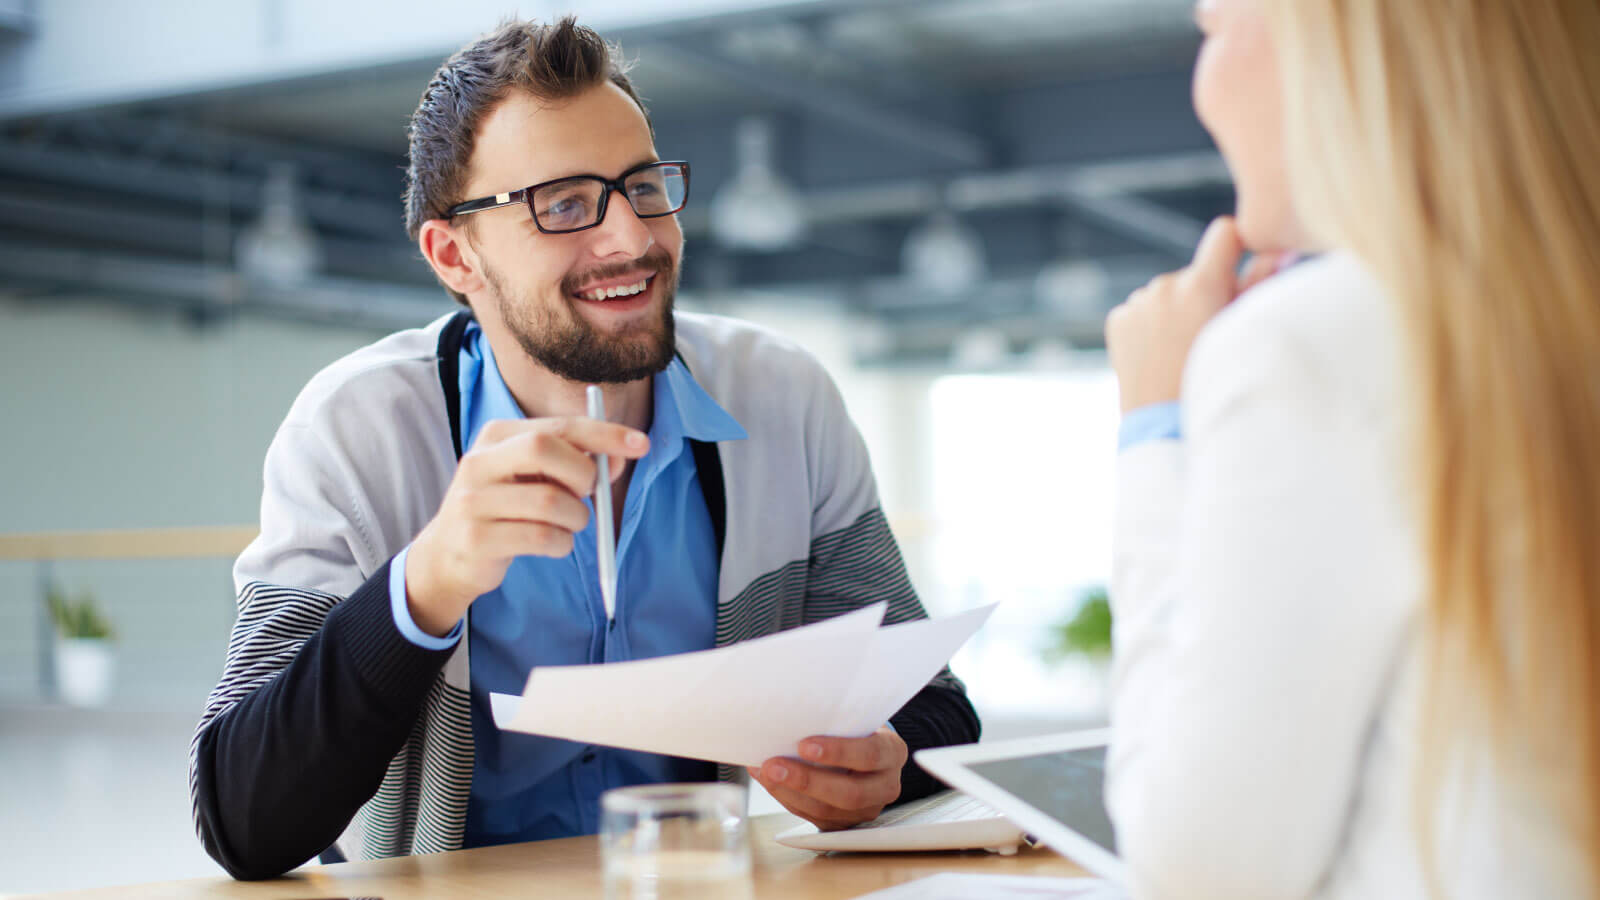 5 Ways to flub a job interview